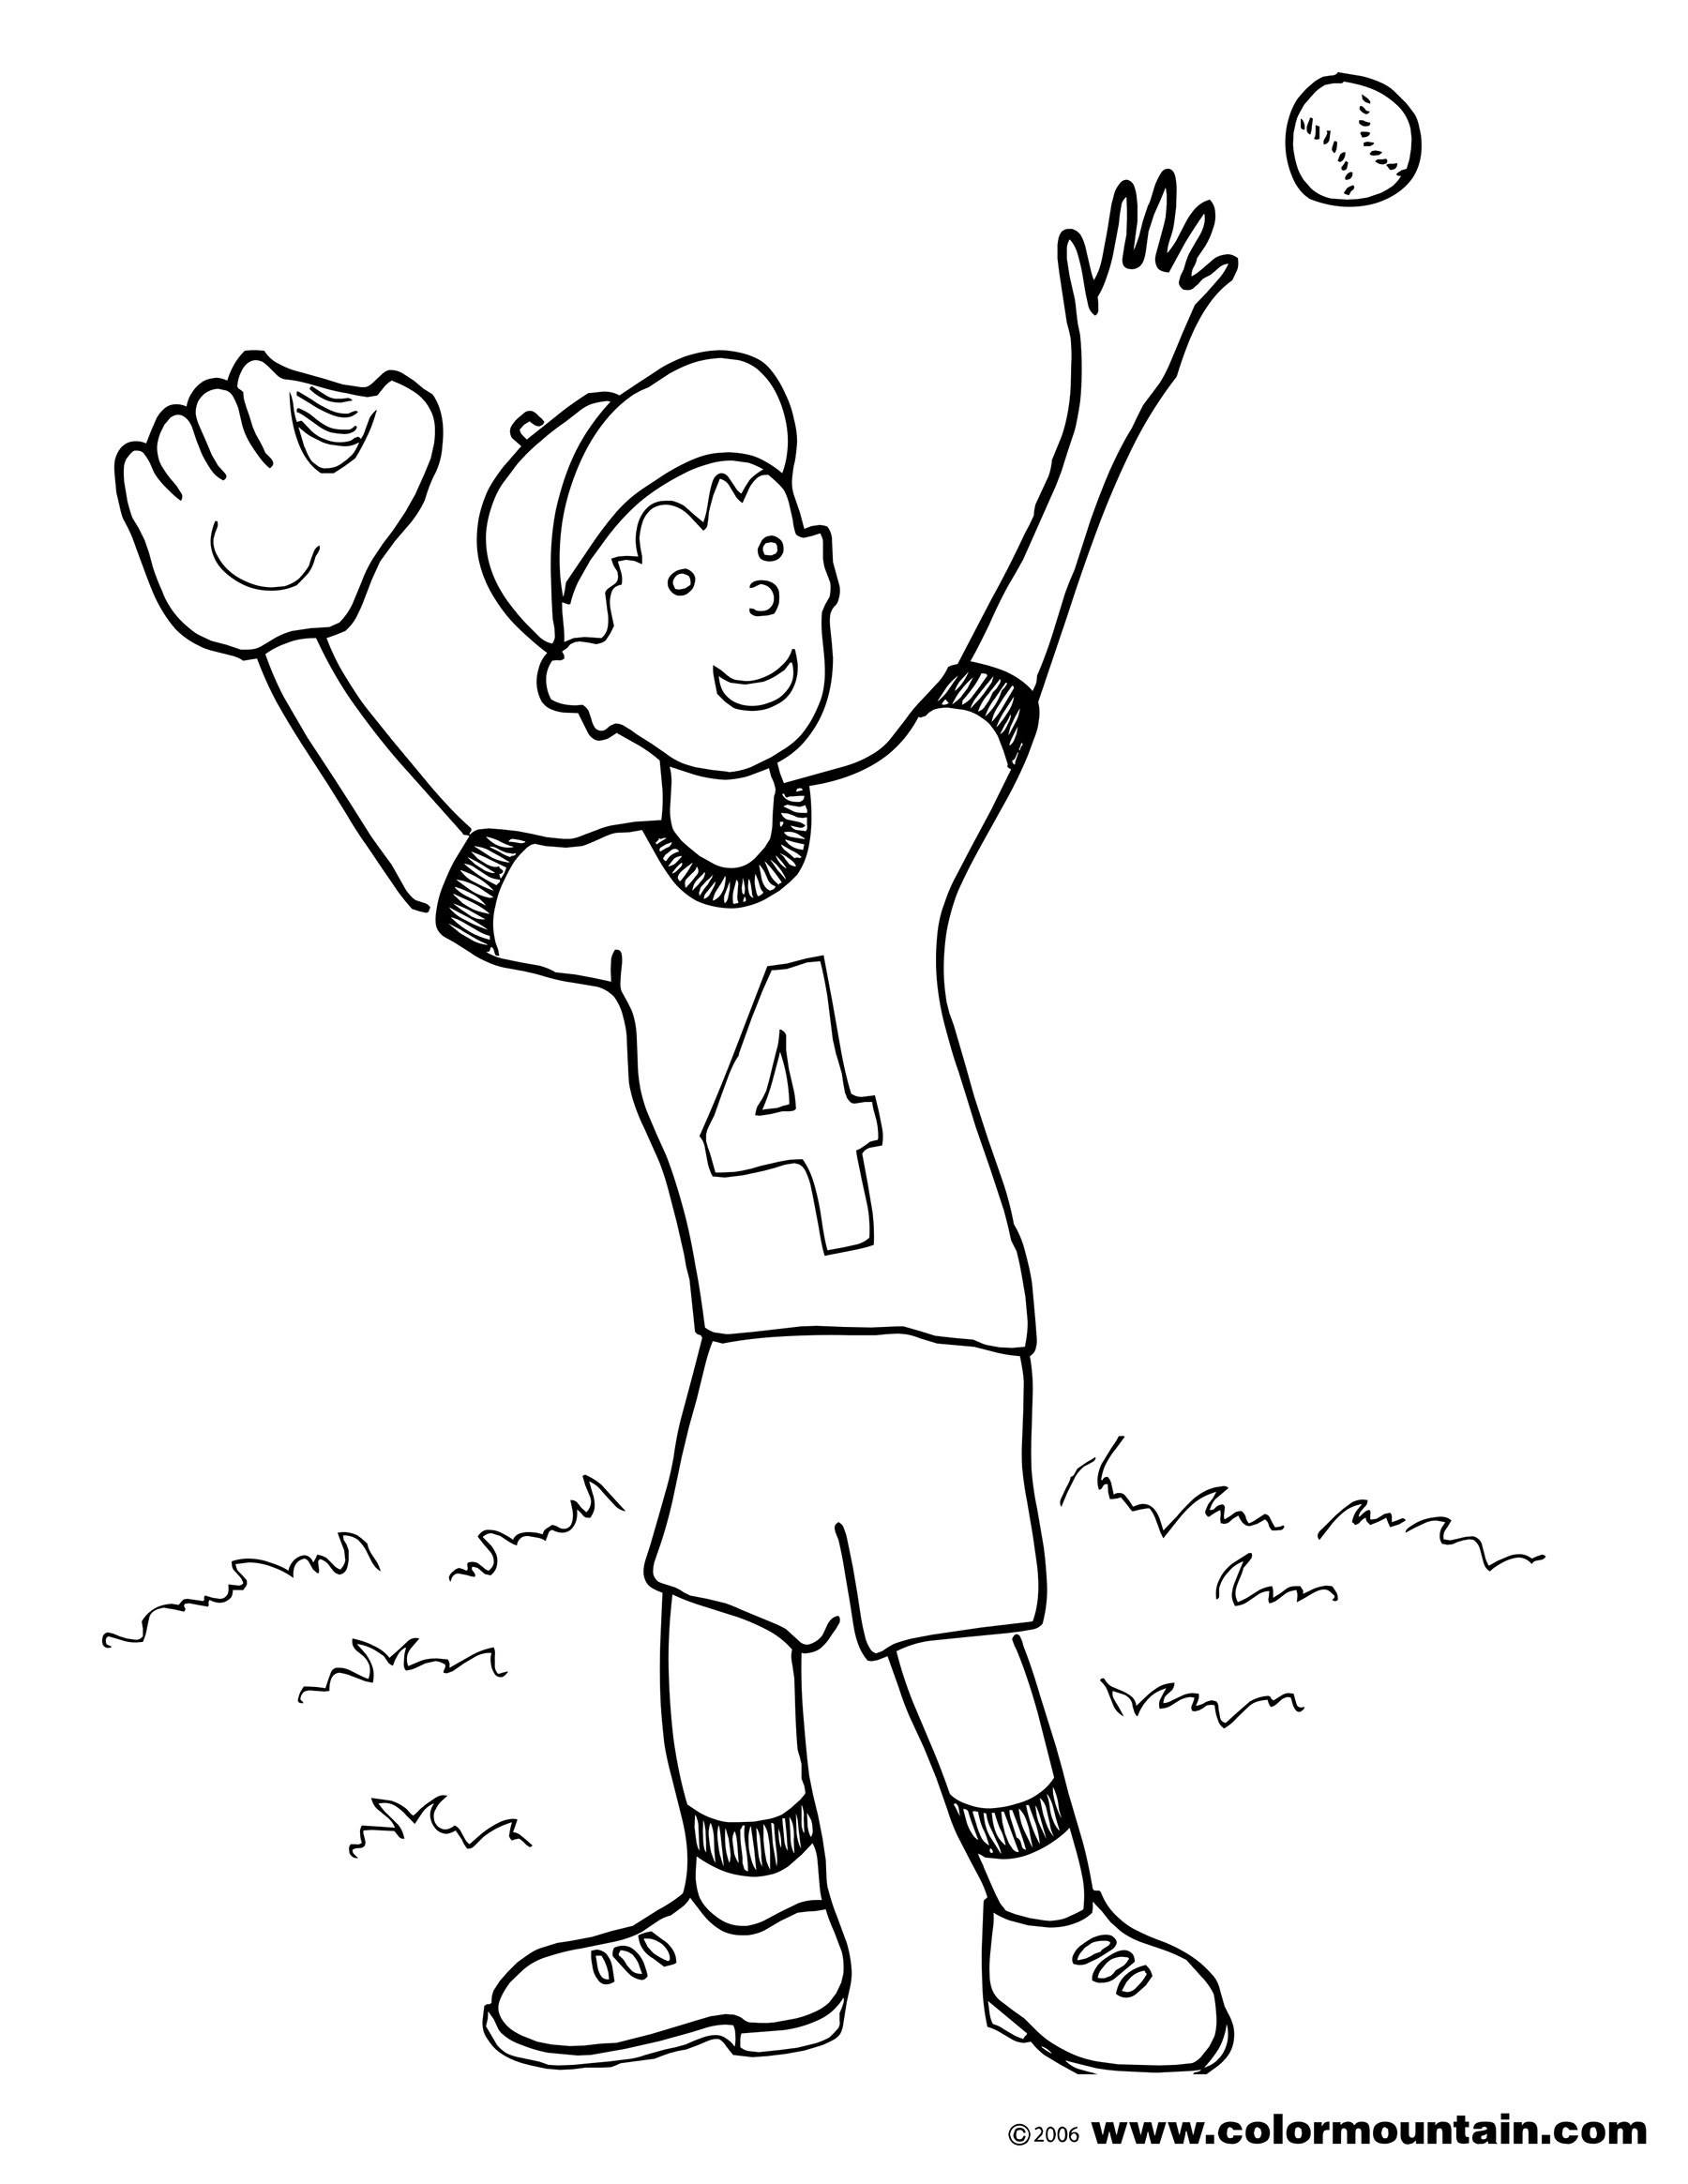 chicago cubs coloring pages - index id=458